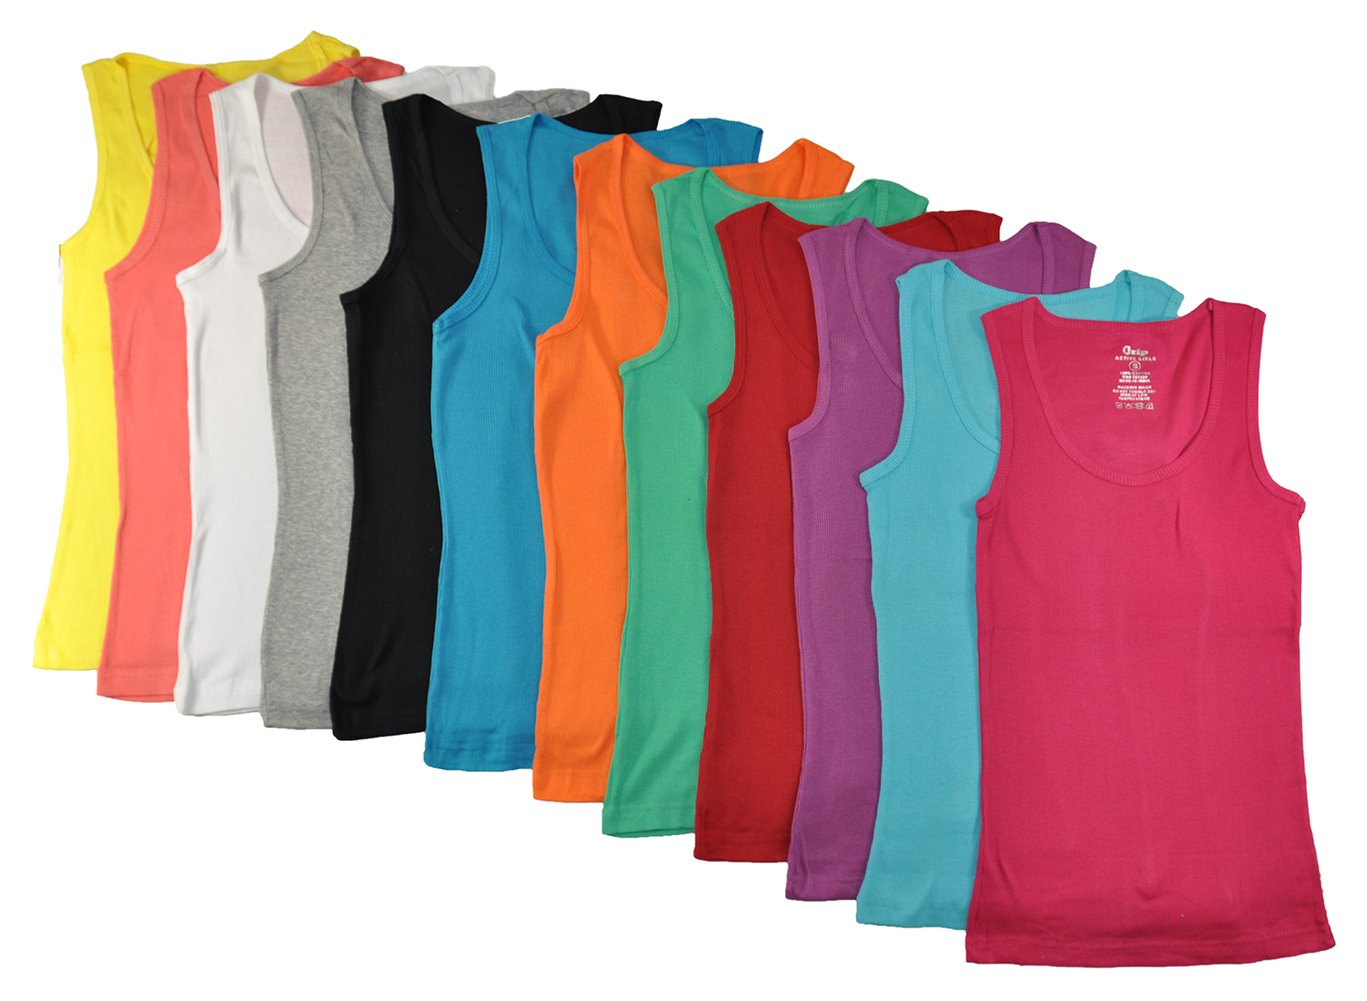 Grip Collections 12-Pack of Women's Ribbed Cotton Muscle Tank Tops, Large